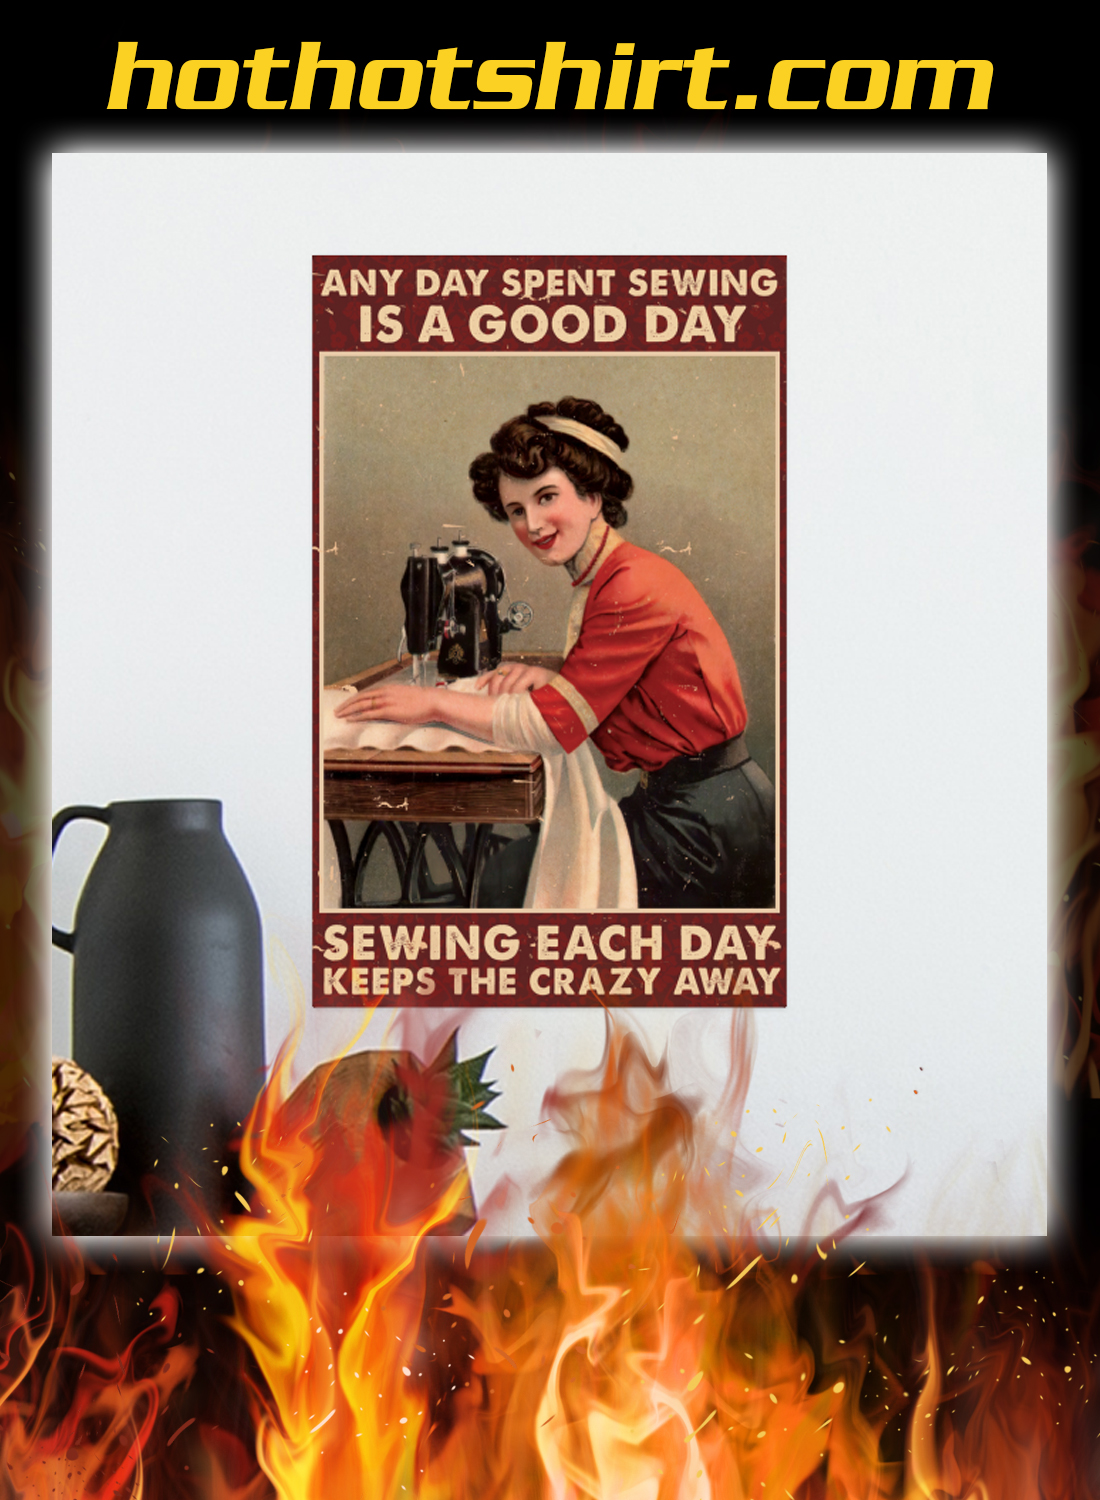 Any day spent sewing is a good day sewing each day poster 2